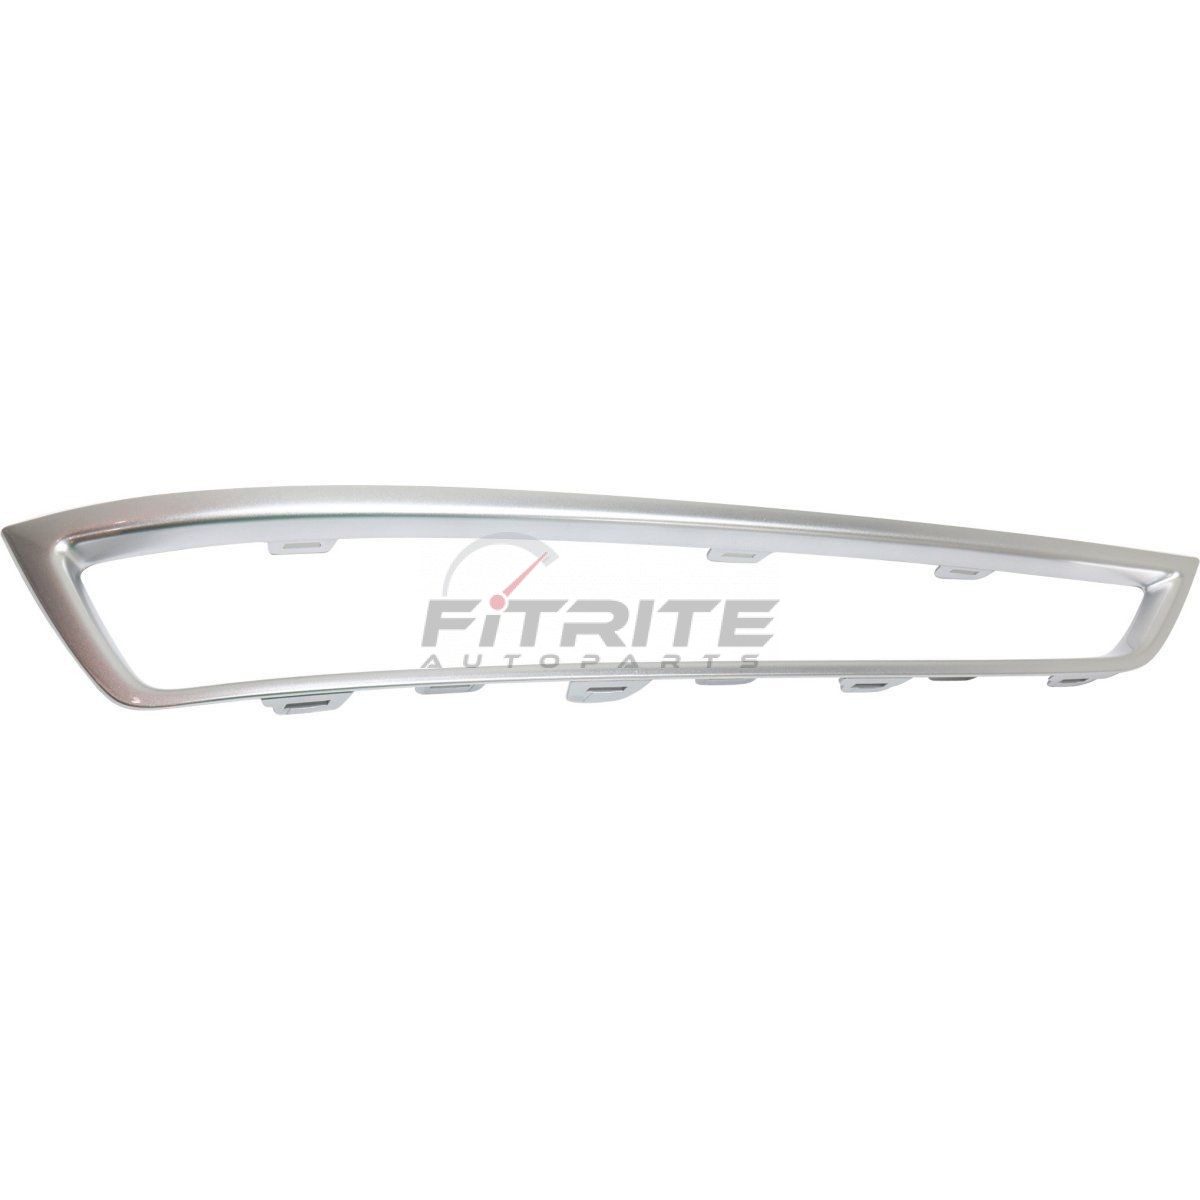 Left Front Bumper Cover Grille Molding Plastic For 2010-13